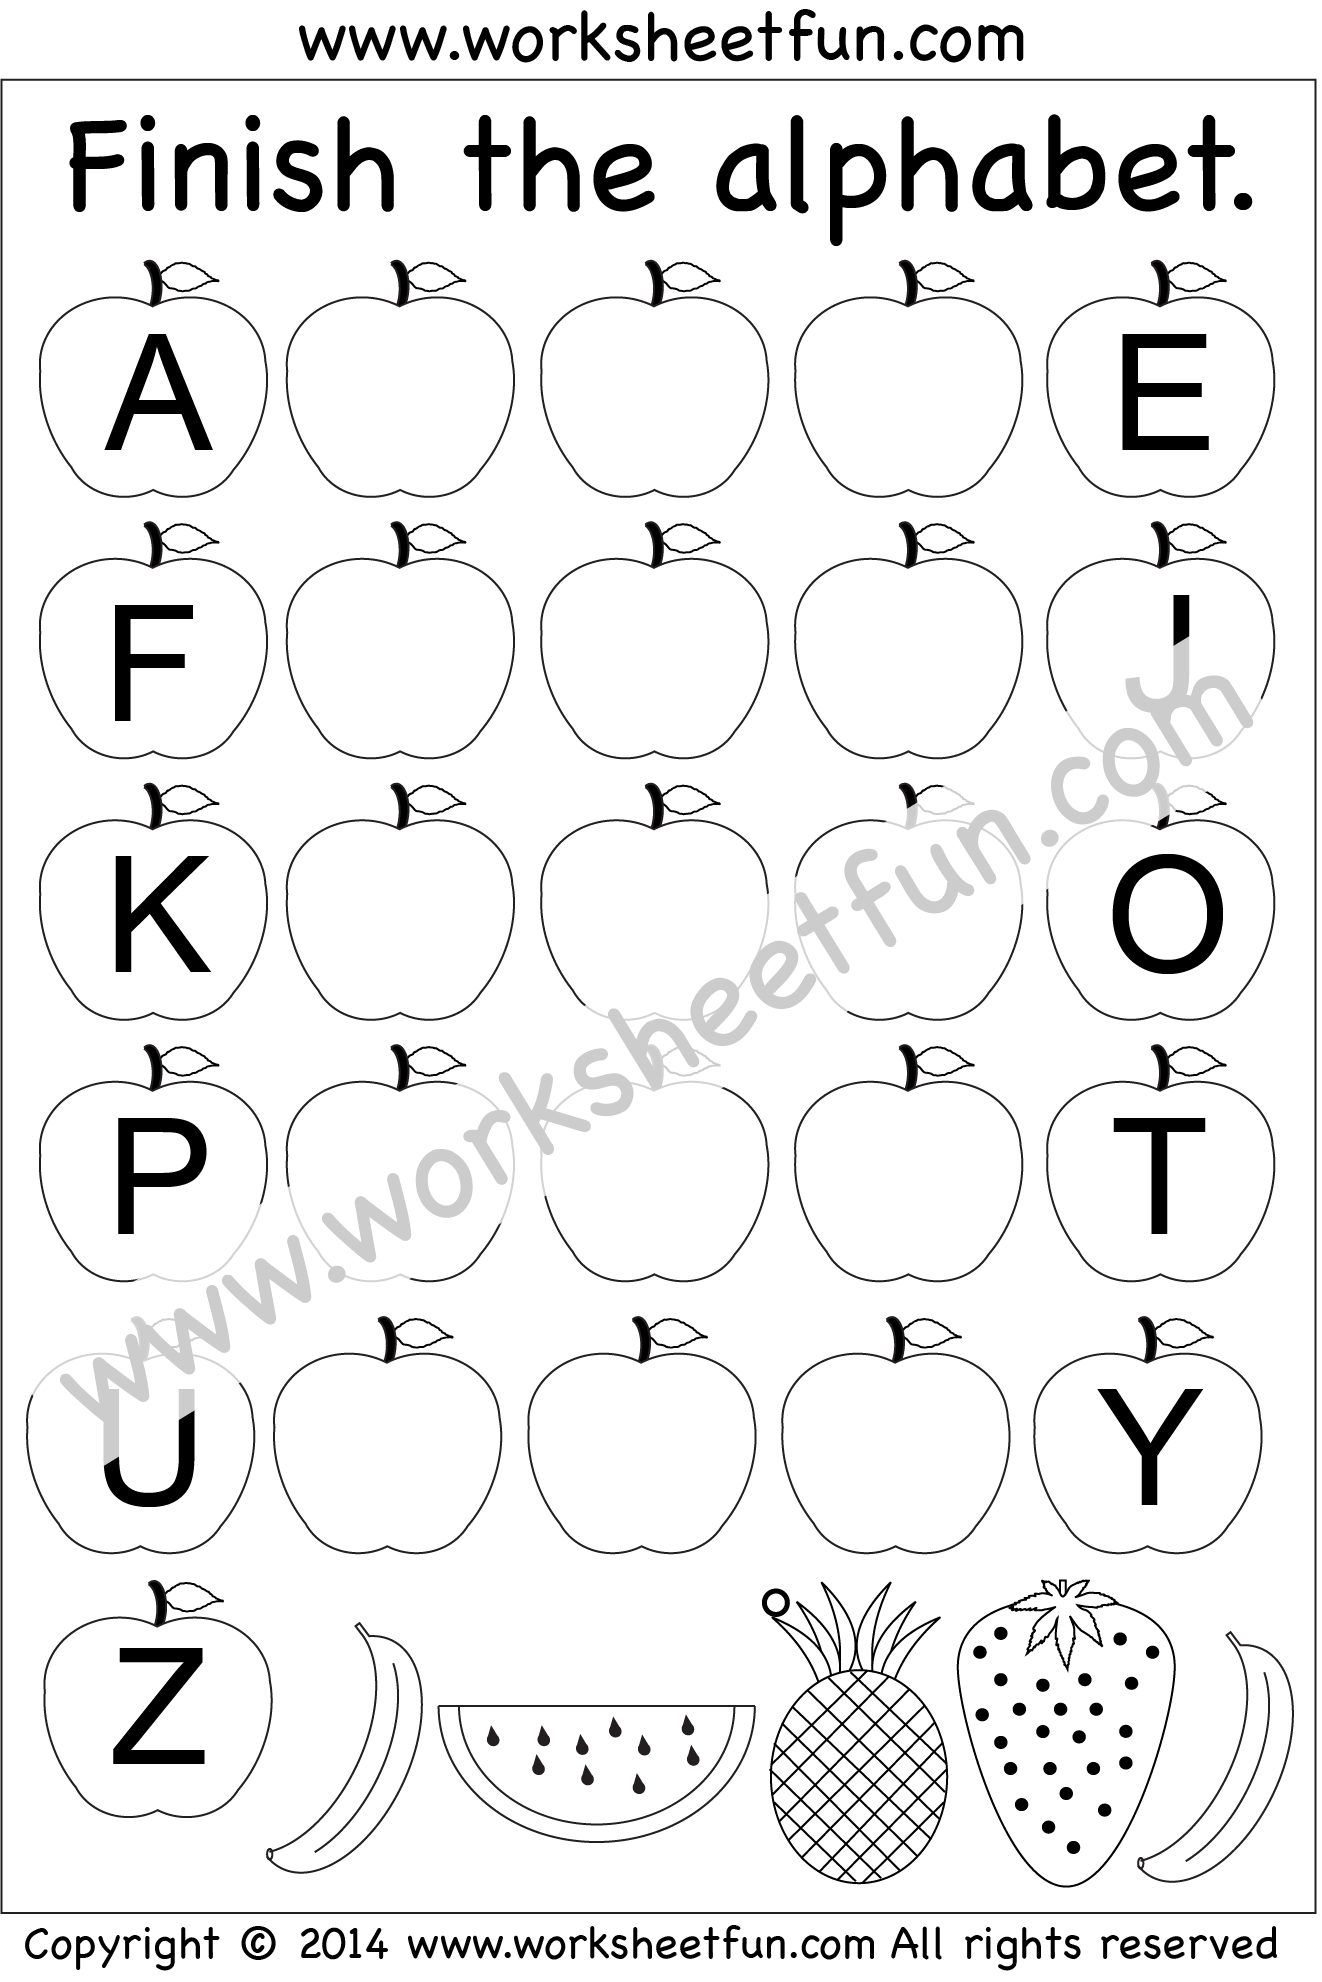 worksheet Fill In The Missing Letters Of The Alphabet Worksheet missing letters pinterest worksheets uppercase le